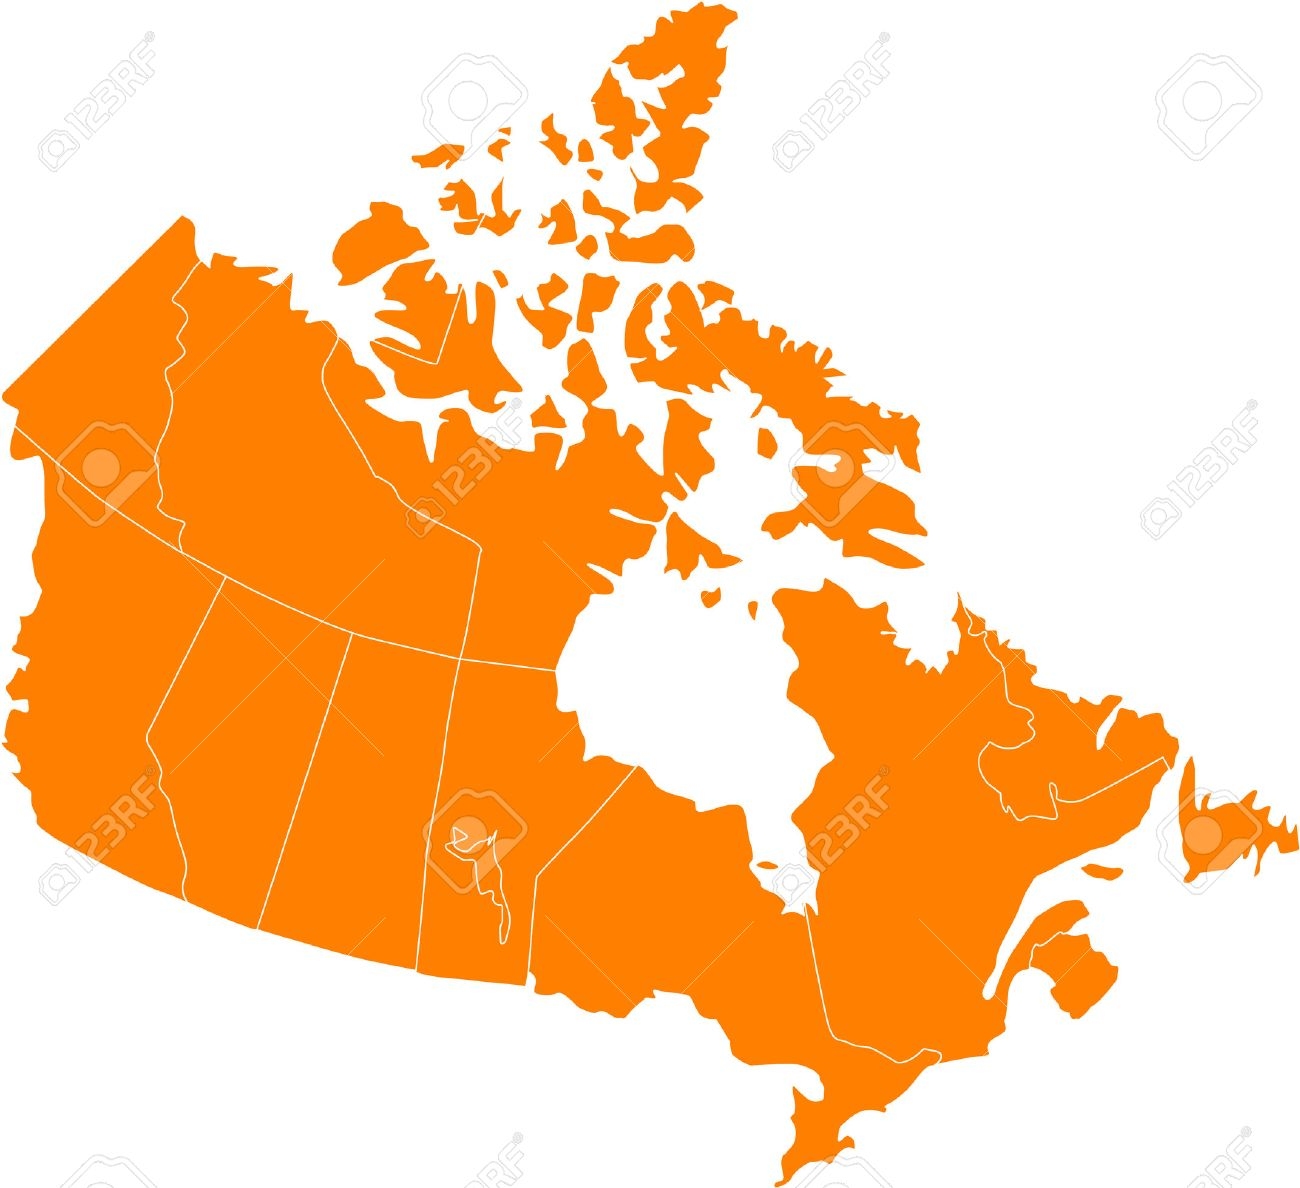 Canada Map Clipart There Is A Map Of Canada Country Royalty Free Cliparts, Vectors